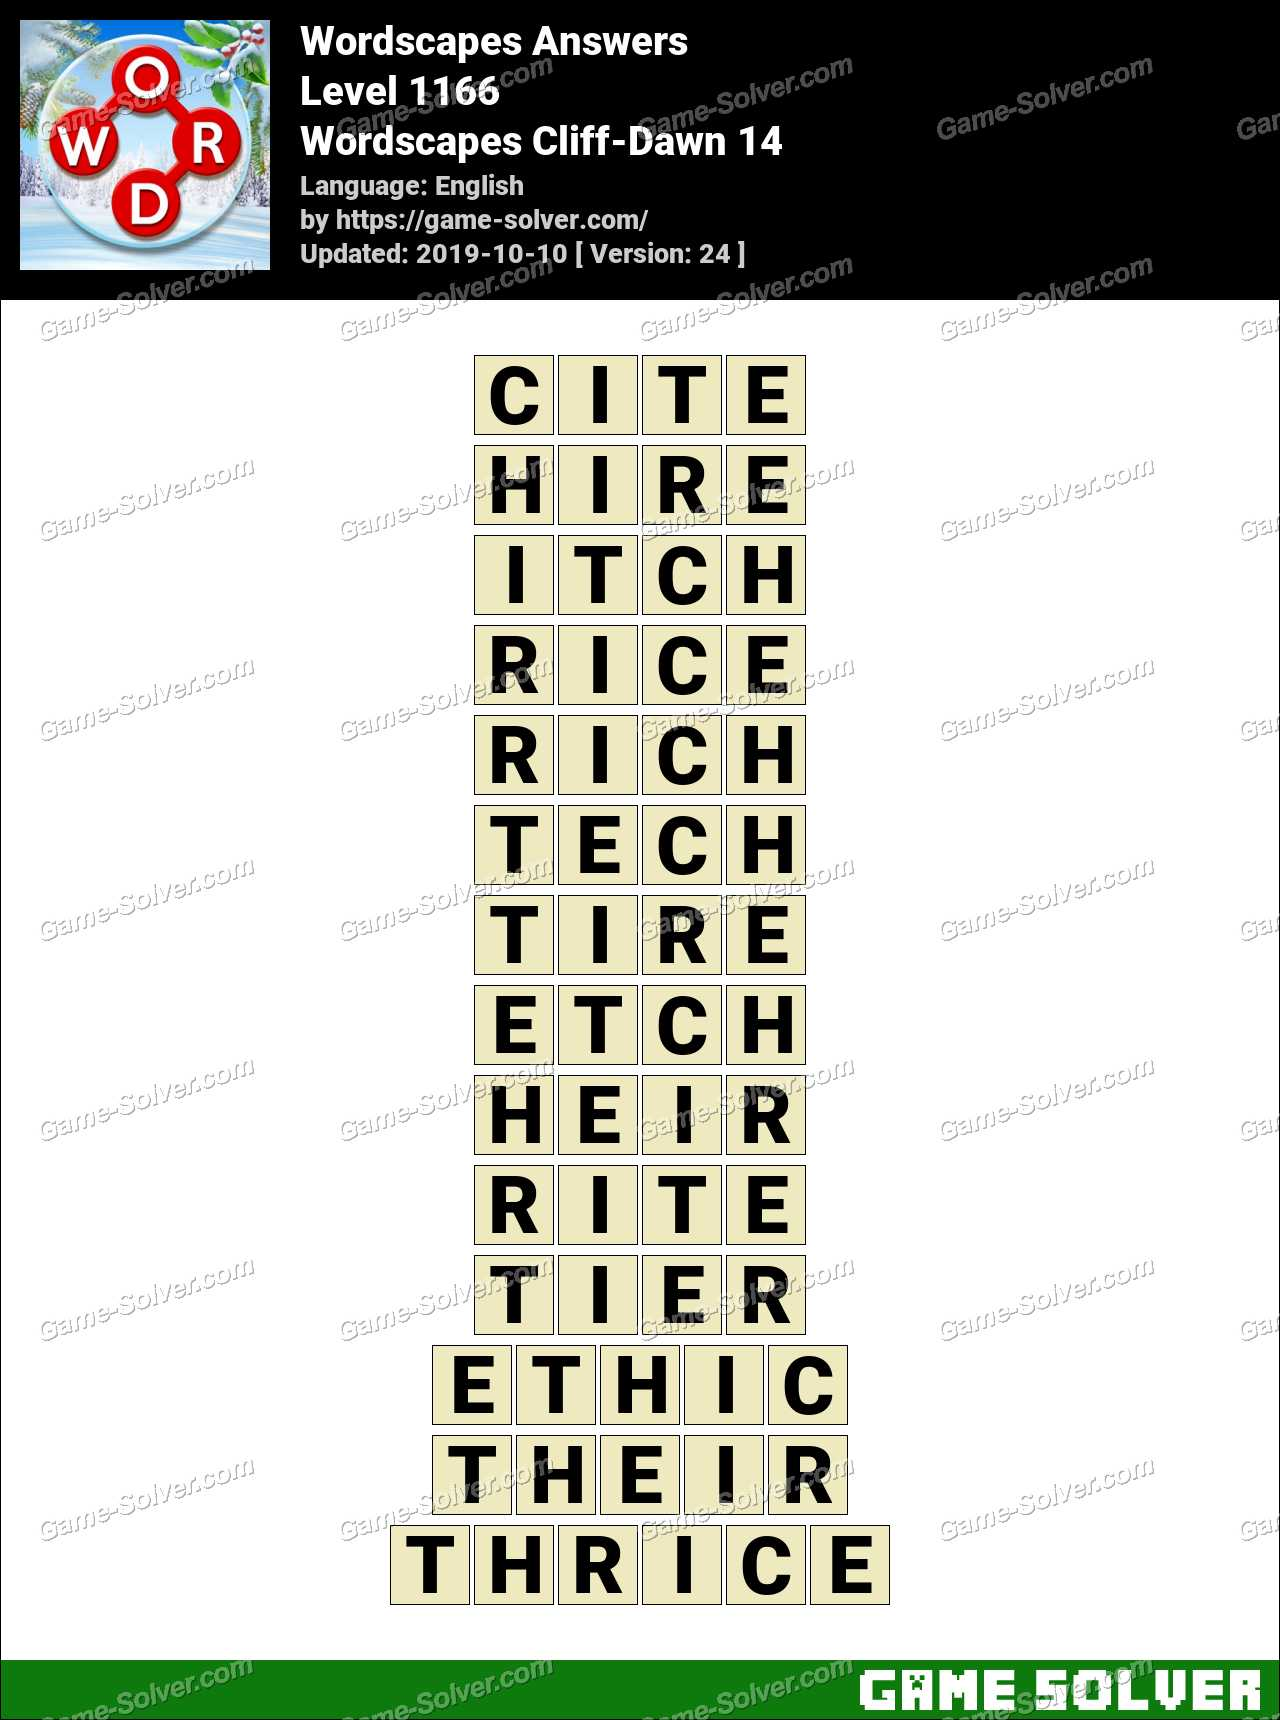 Wordscapes Cliff-Dawn 14 Answers